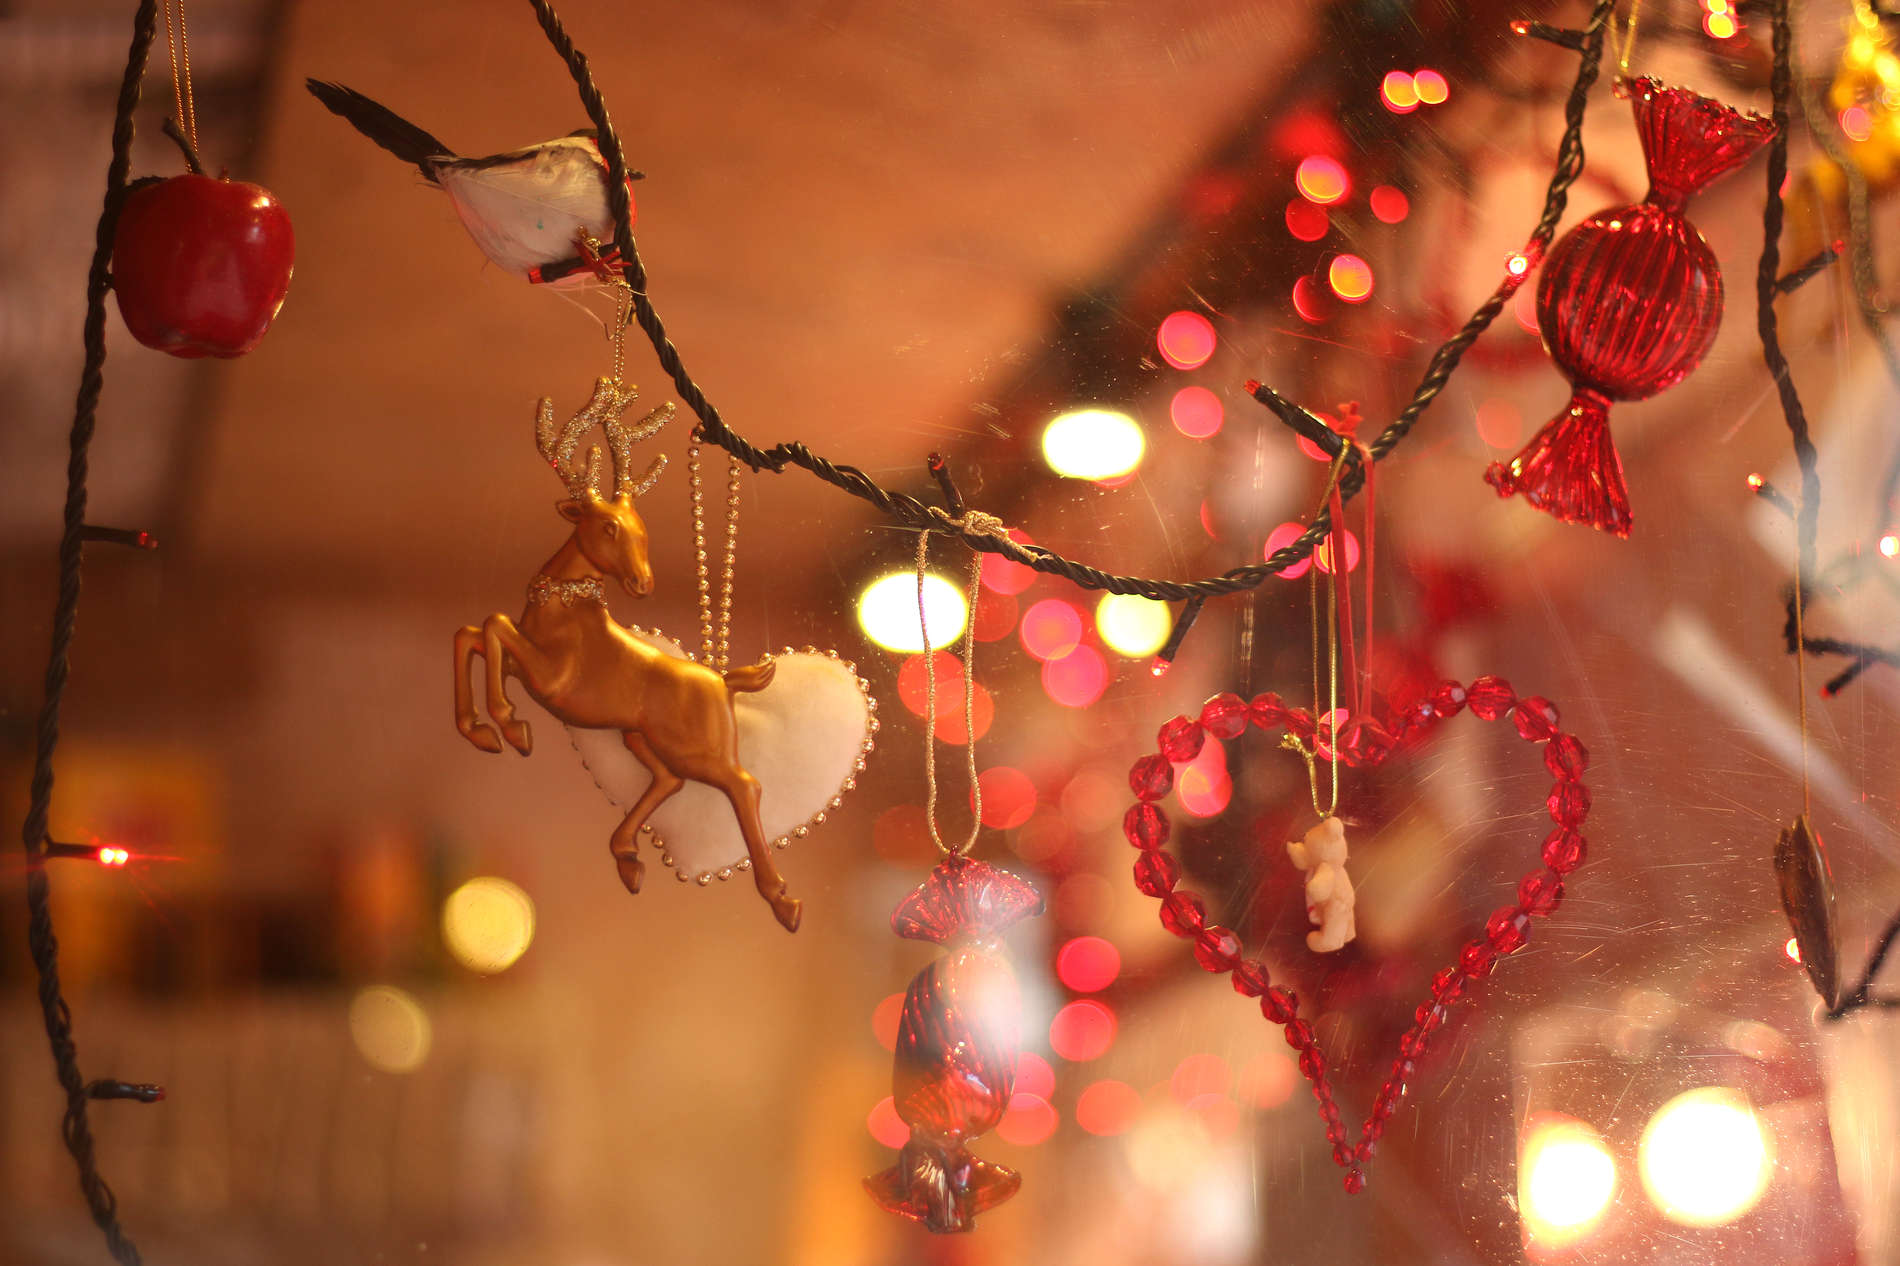 Christmas decorations at Tallinn Christmas Market in Estonia. Photo by: Kadi-Liis Koppel